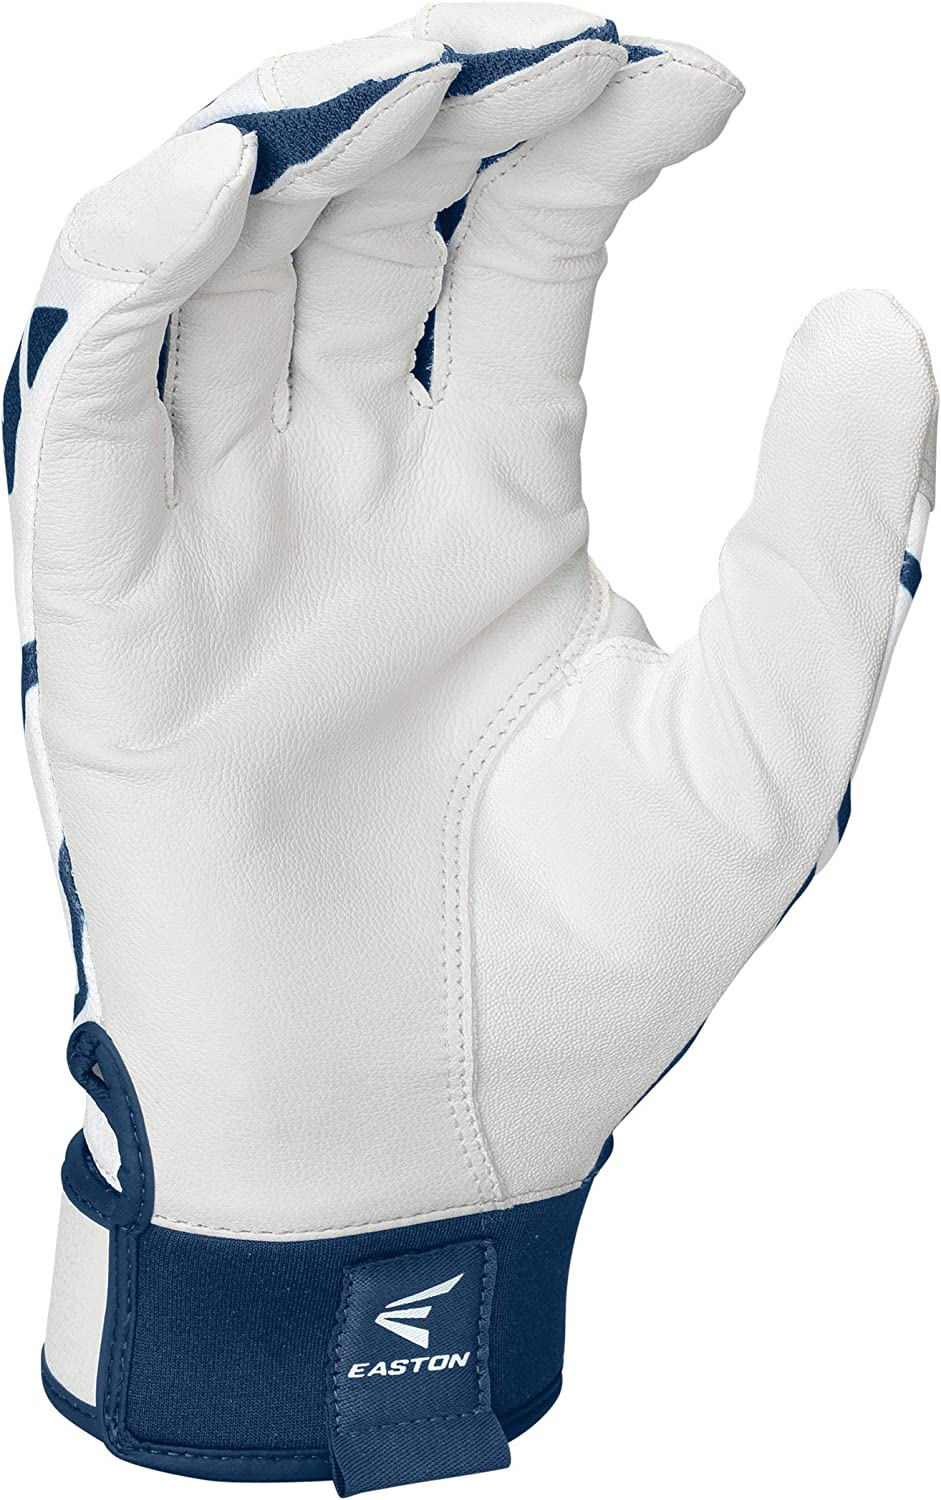 Flexible 4 Way Stretch Mesh Back Baseball Softball Smooth Goatskin Palm Adult and Youth Pair EASTON Gametime Batting Glove Series Extra Durable Synthetic Thumb 2021 Neoprene Strap